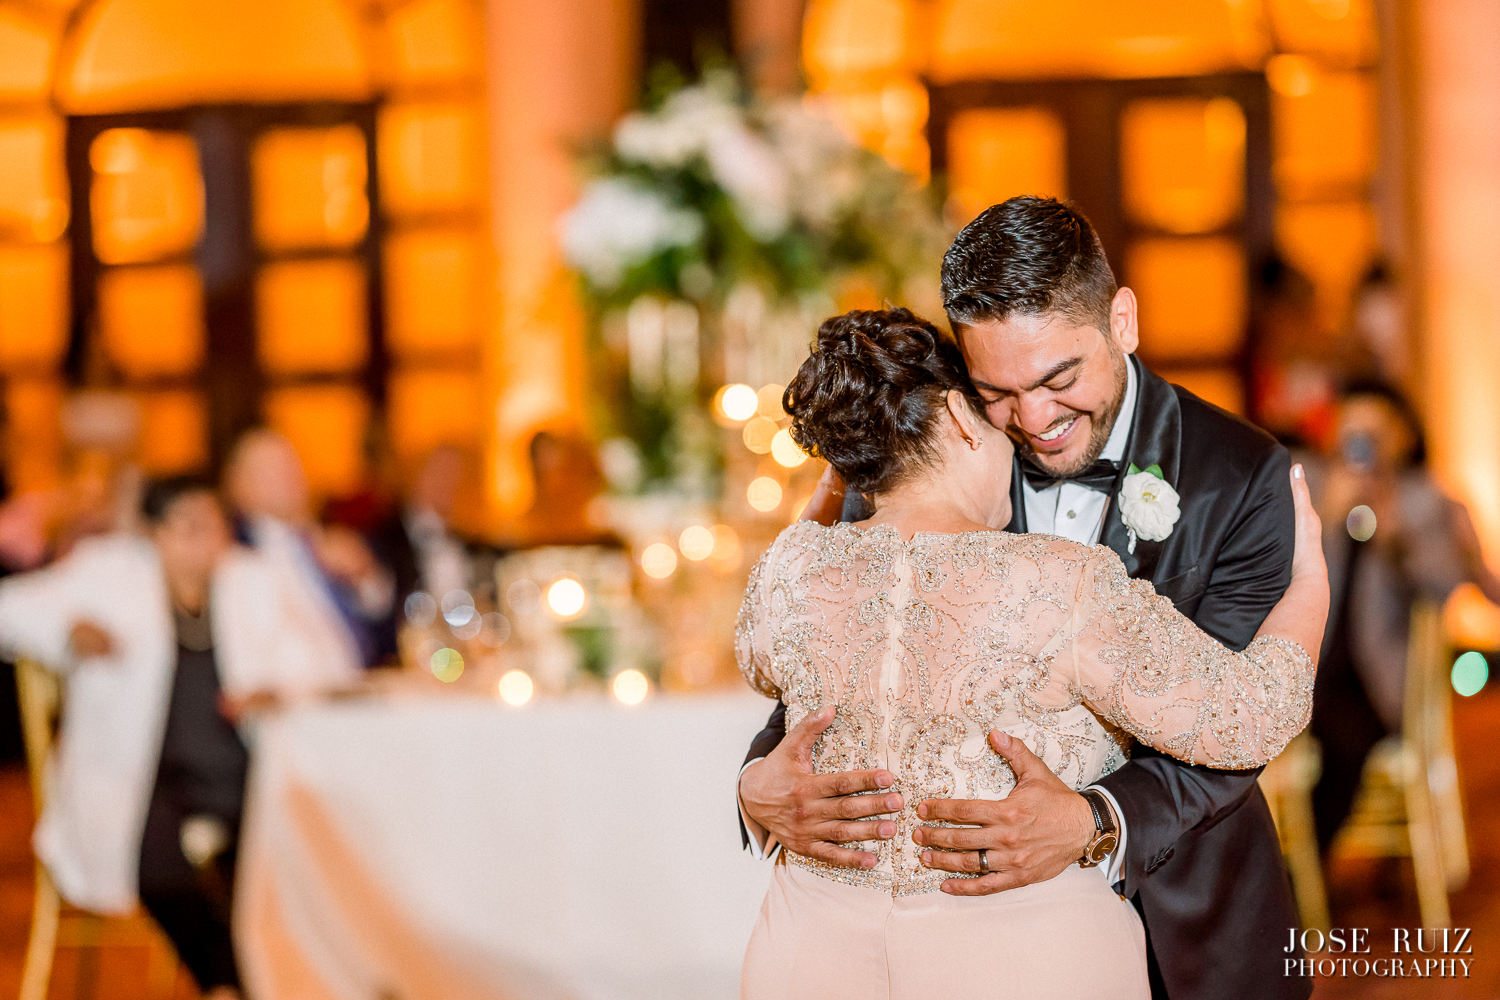 Jose Ruiz Photography- Madalyn & Joel-0129.jpg